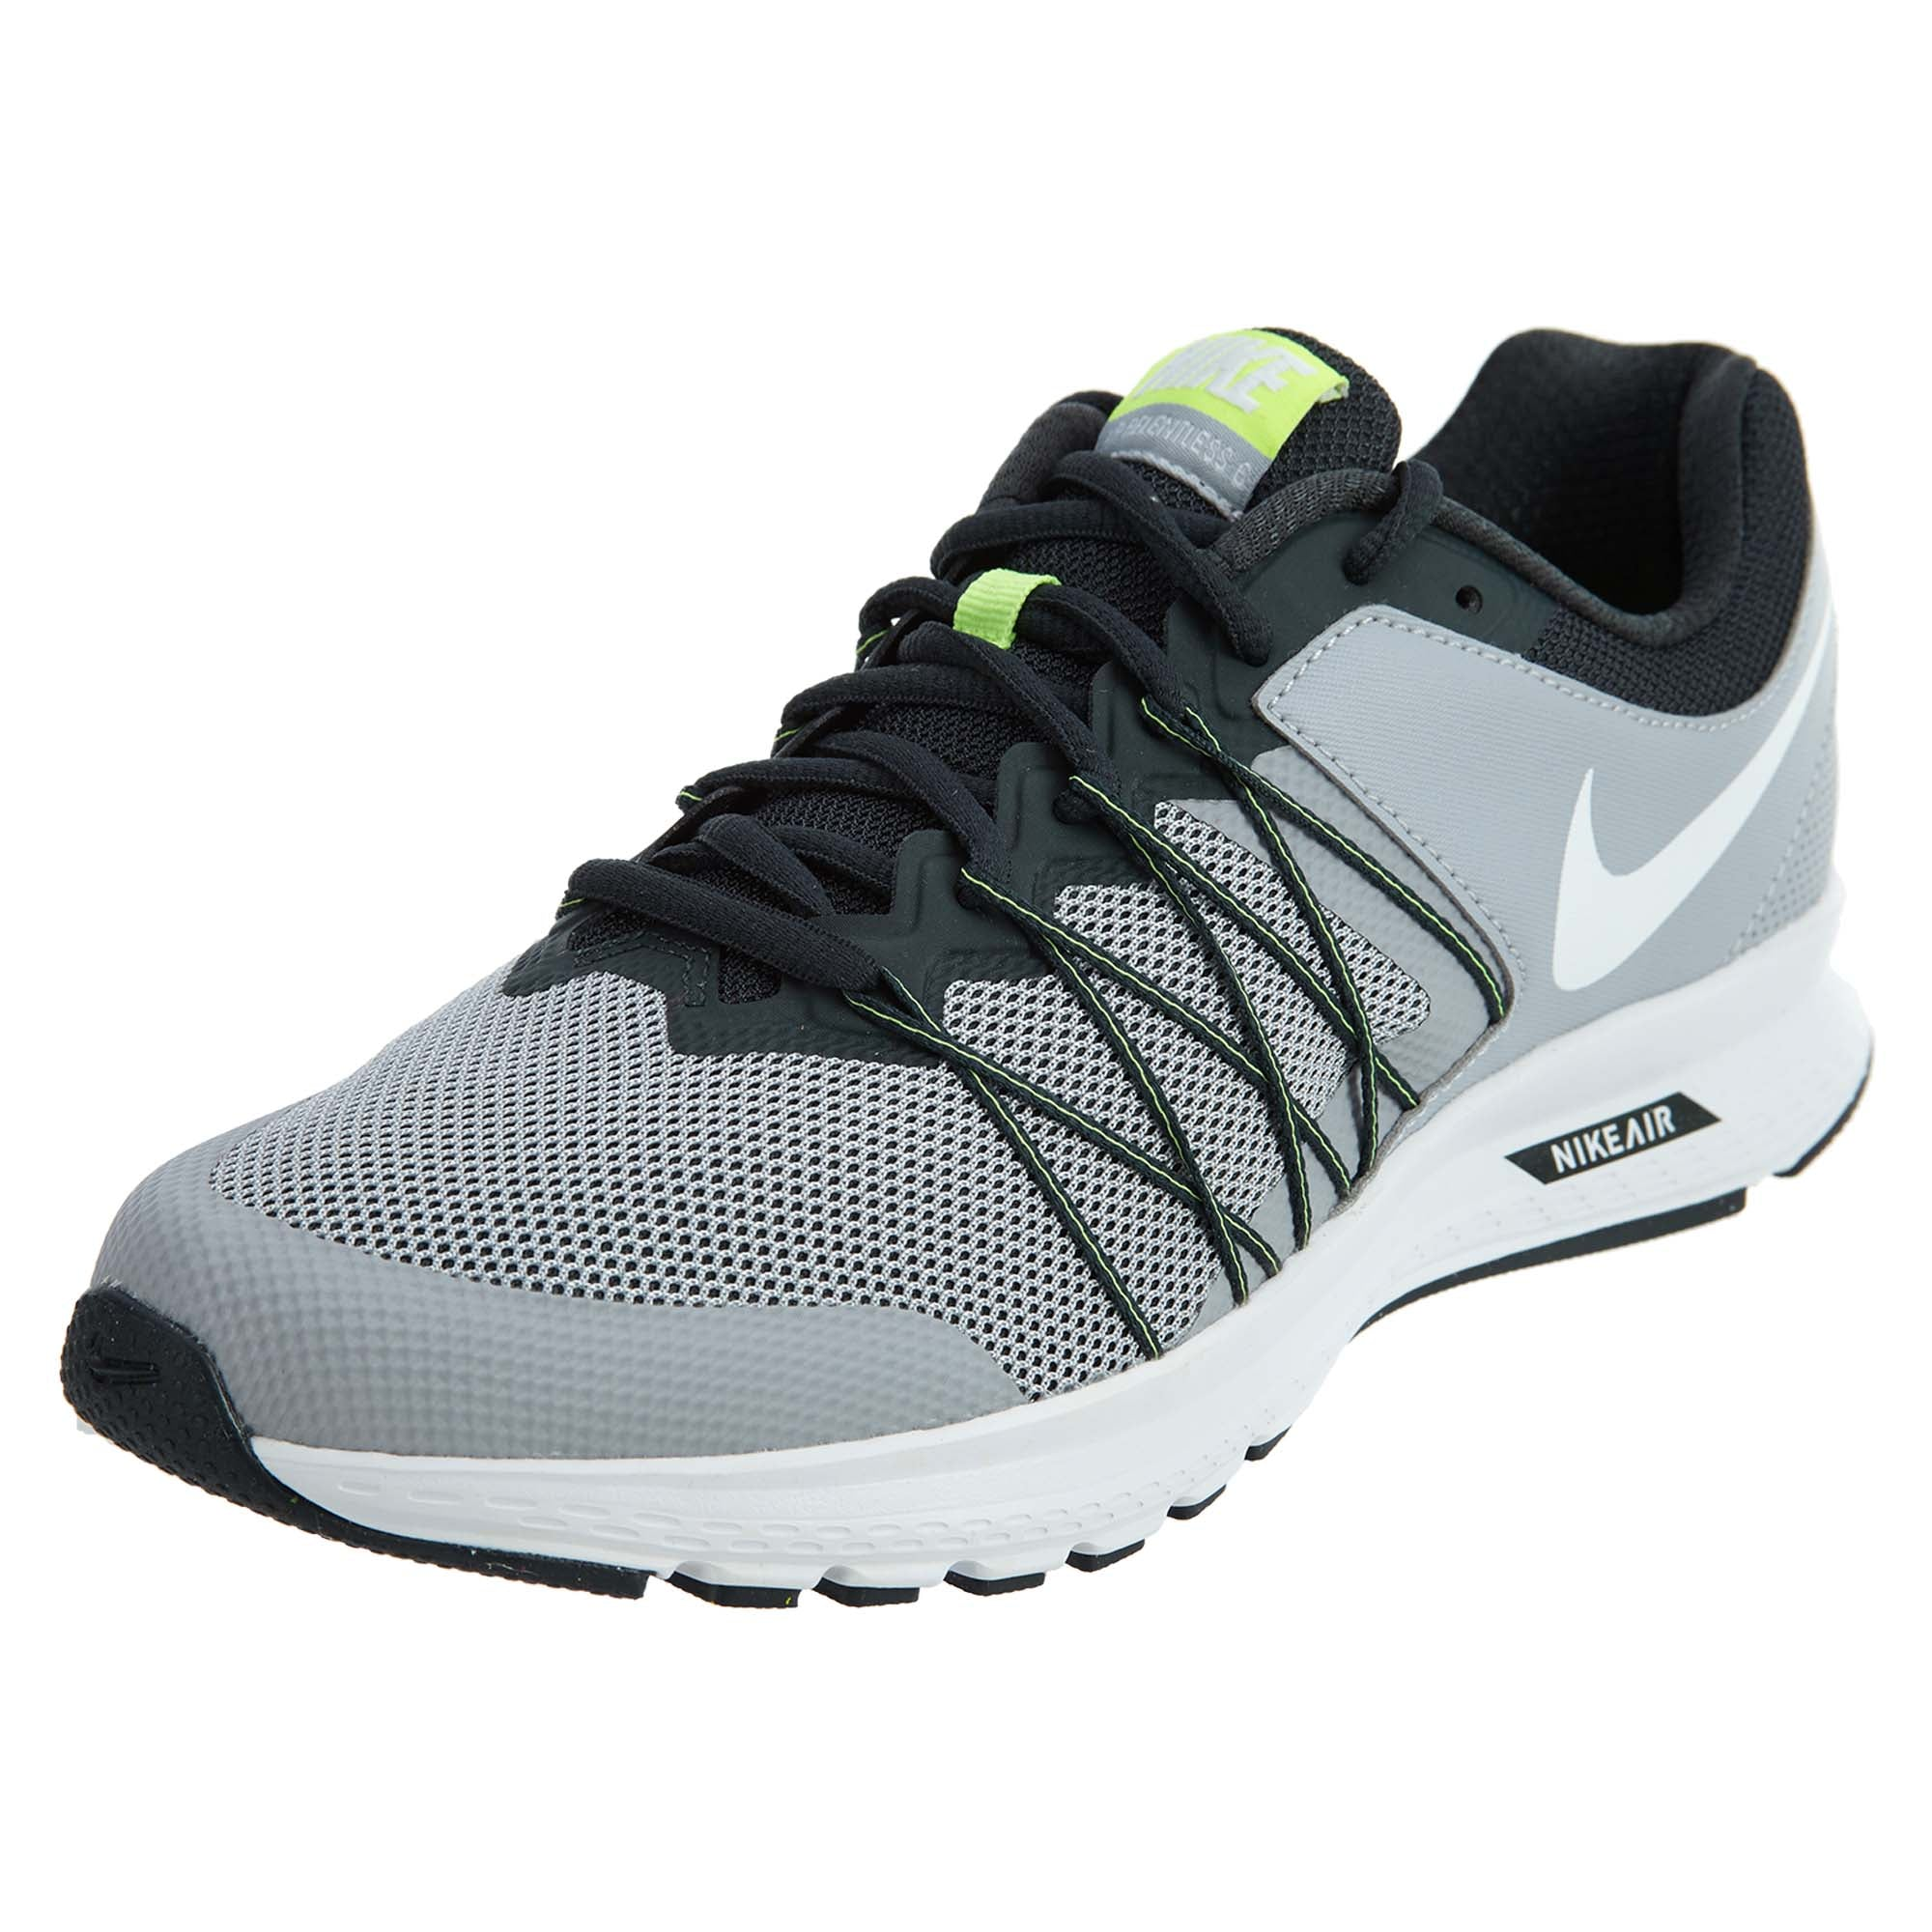 114ef683a26 Nike Air Relentless 6 Msl Mens Style   843881